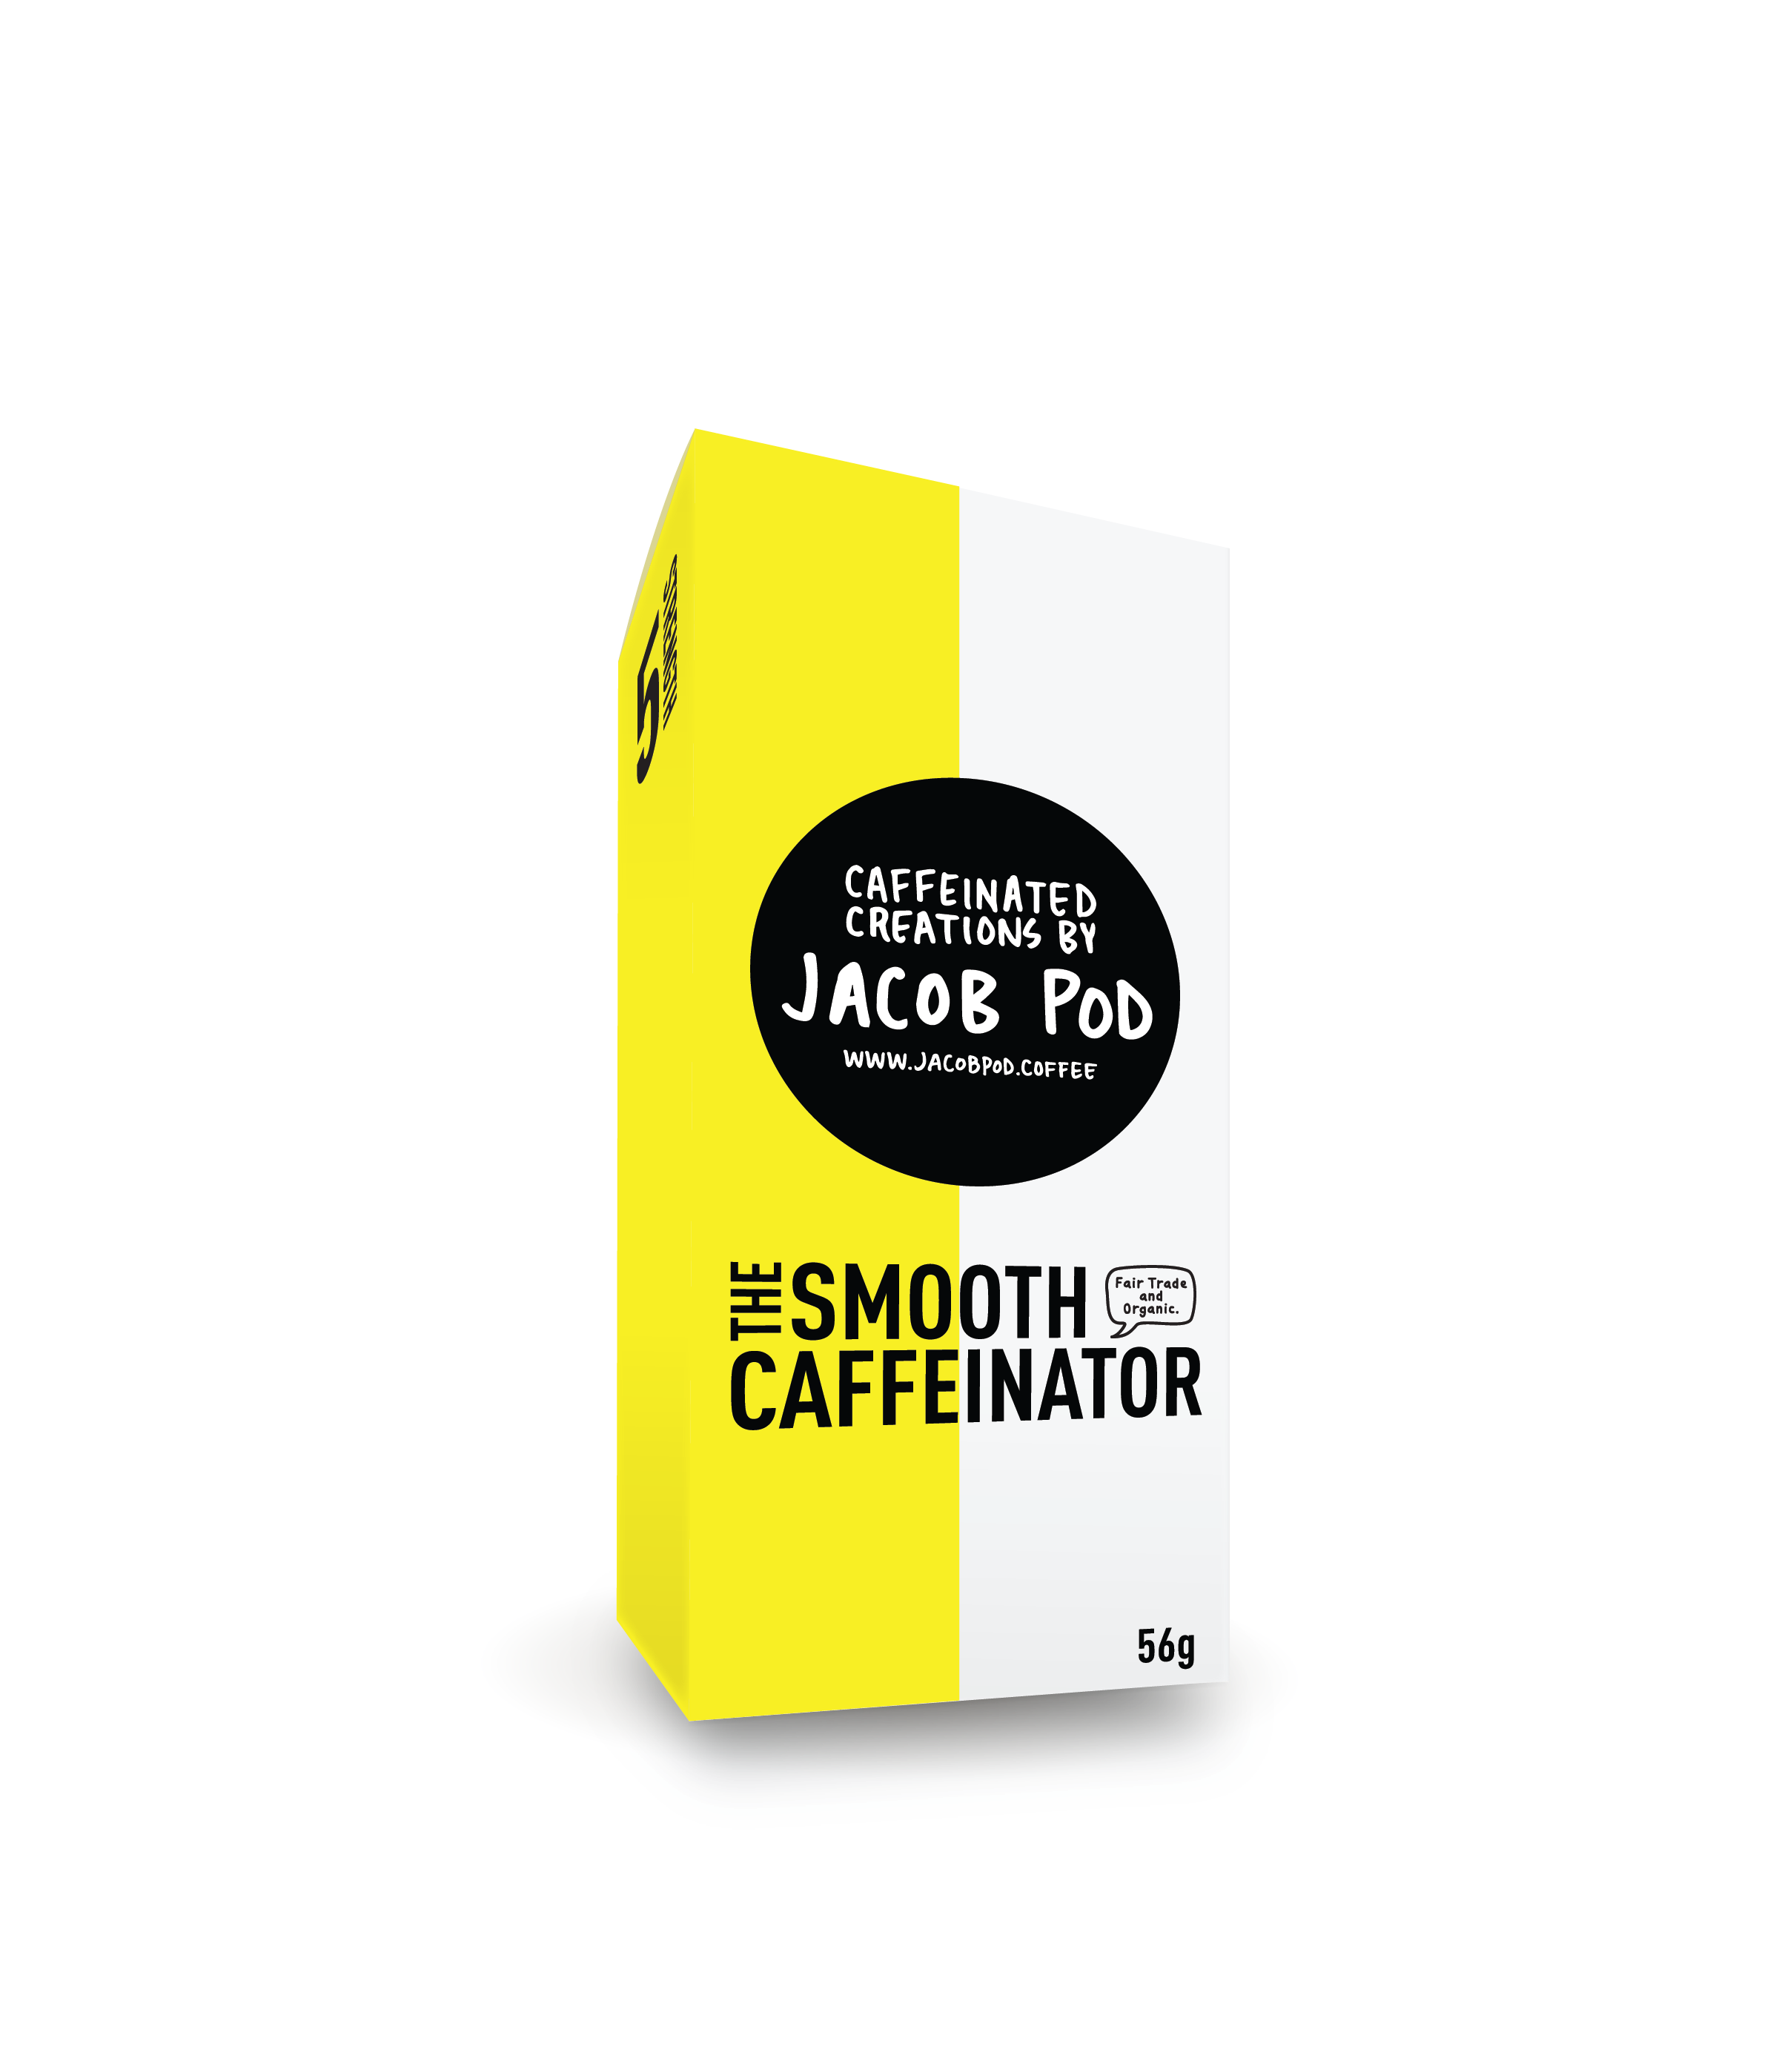 08 JacobPodCoffeeBoxes - Smooth.png